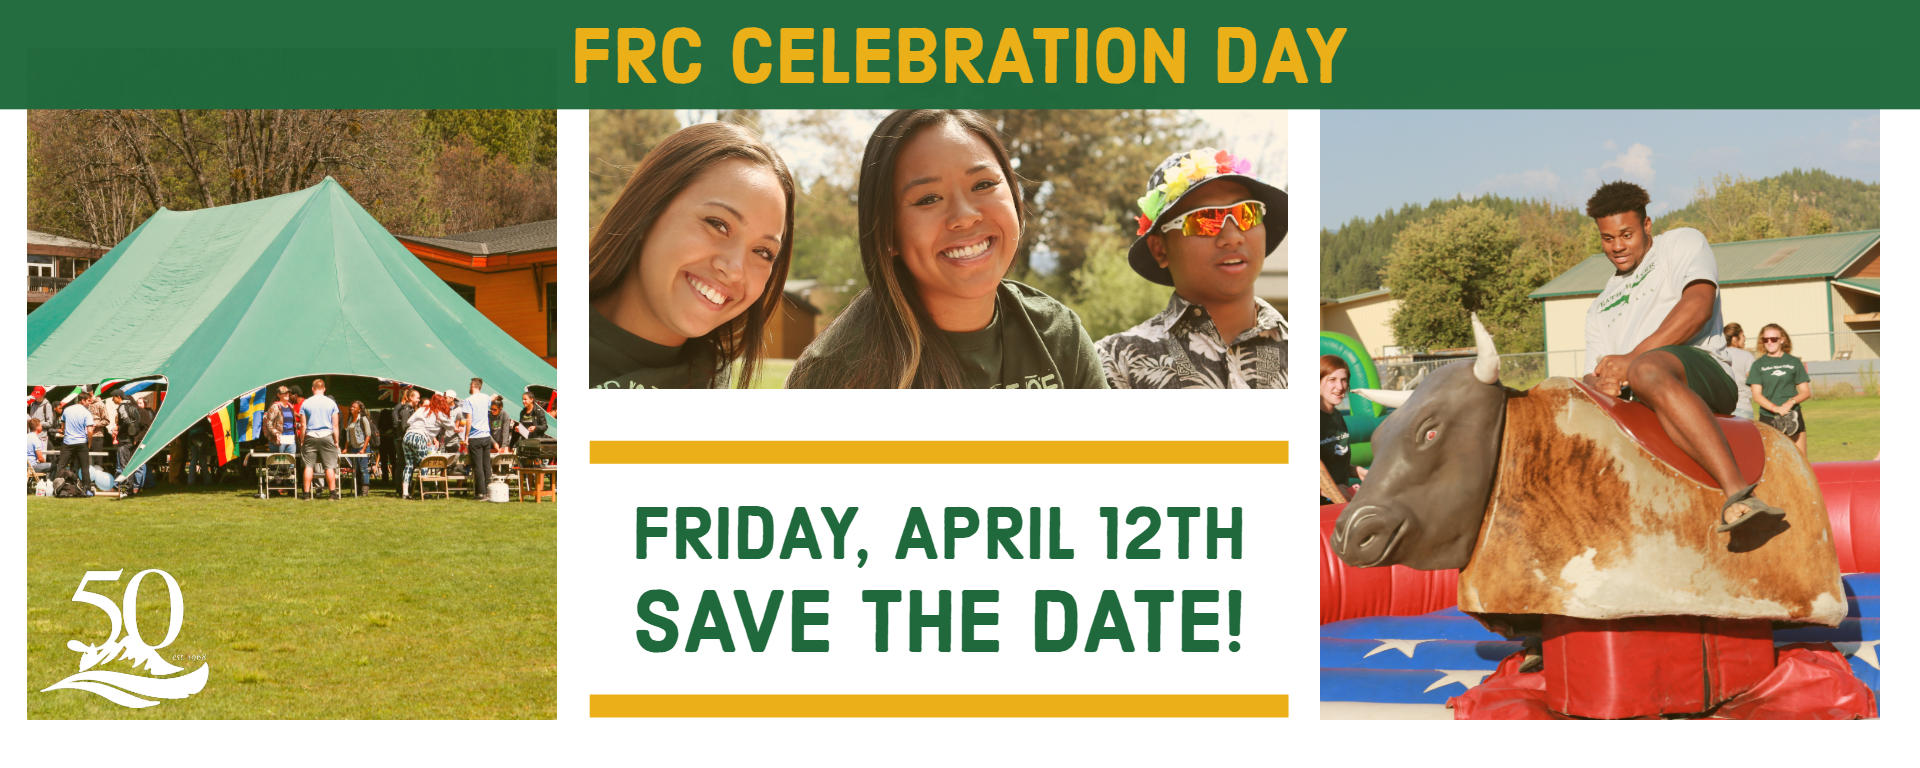 FRC Celebration day, students smiling, Friday April 12th save the date